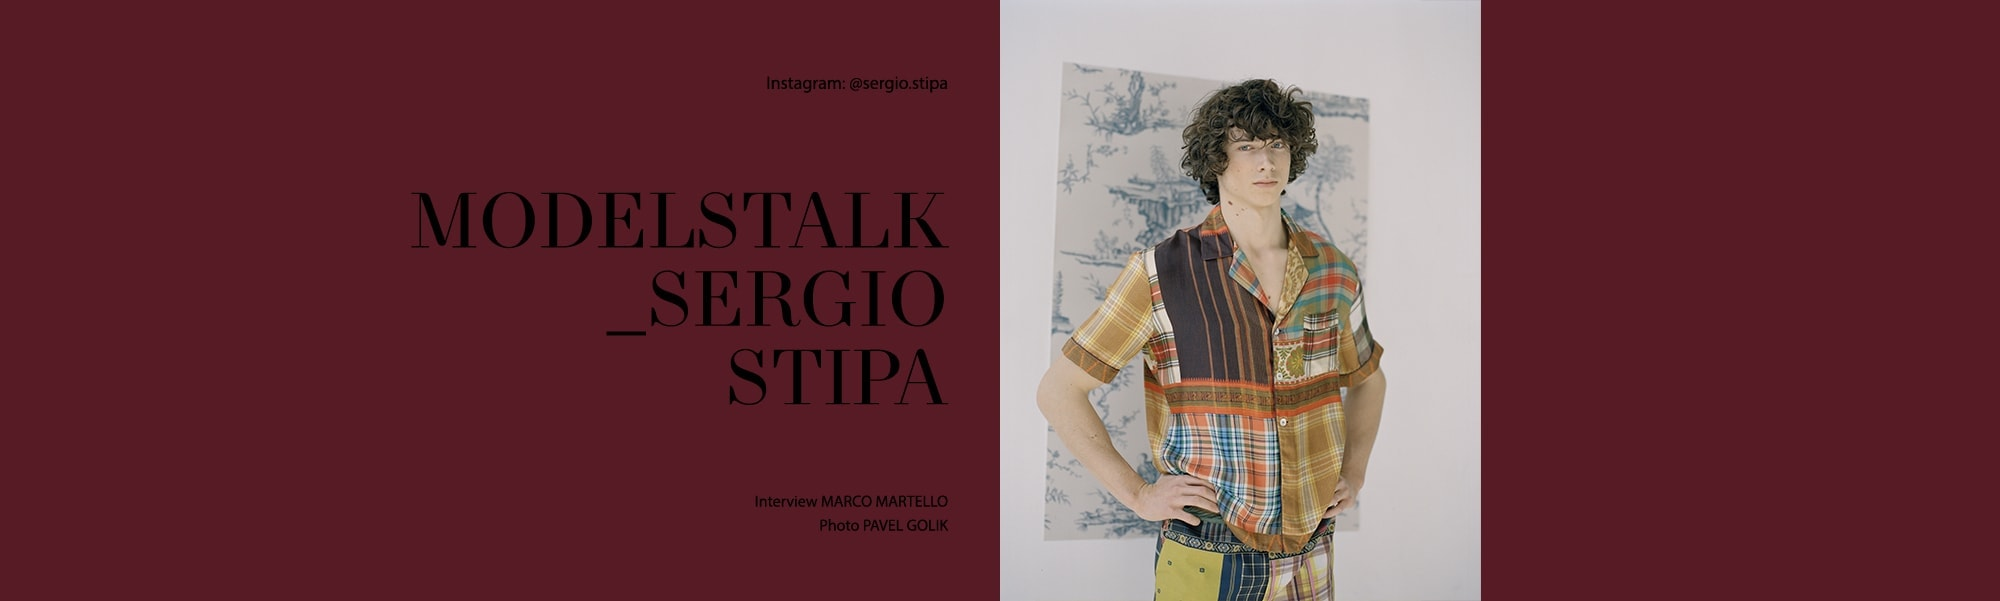 sergio-stipa-main-banner-thegreatestmagazine-talking-heads